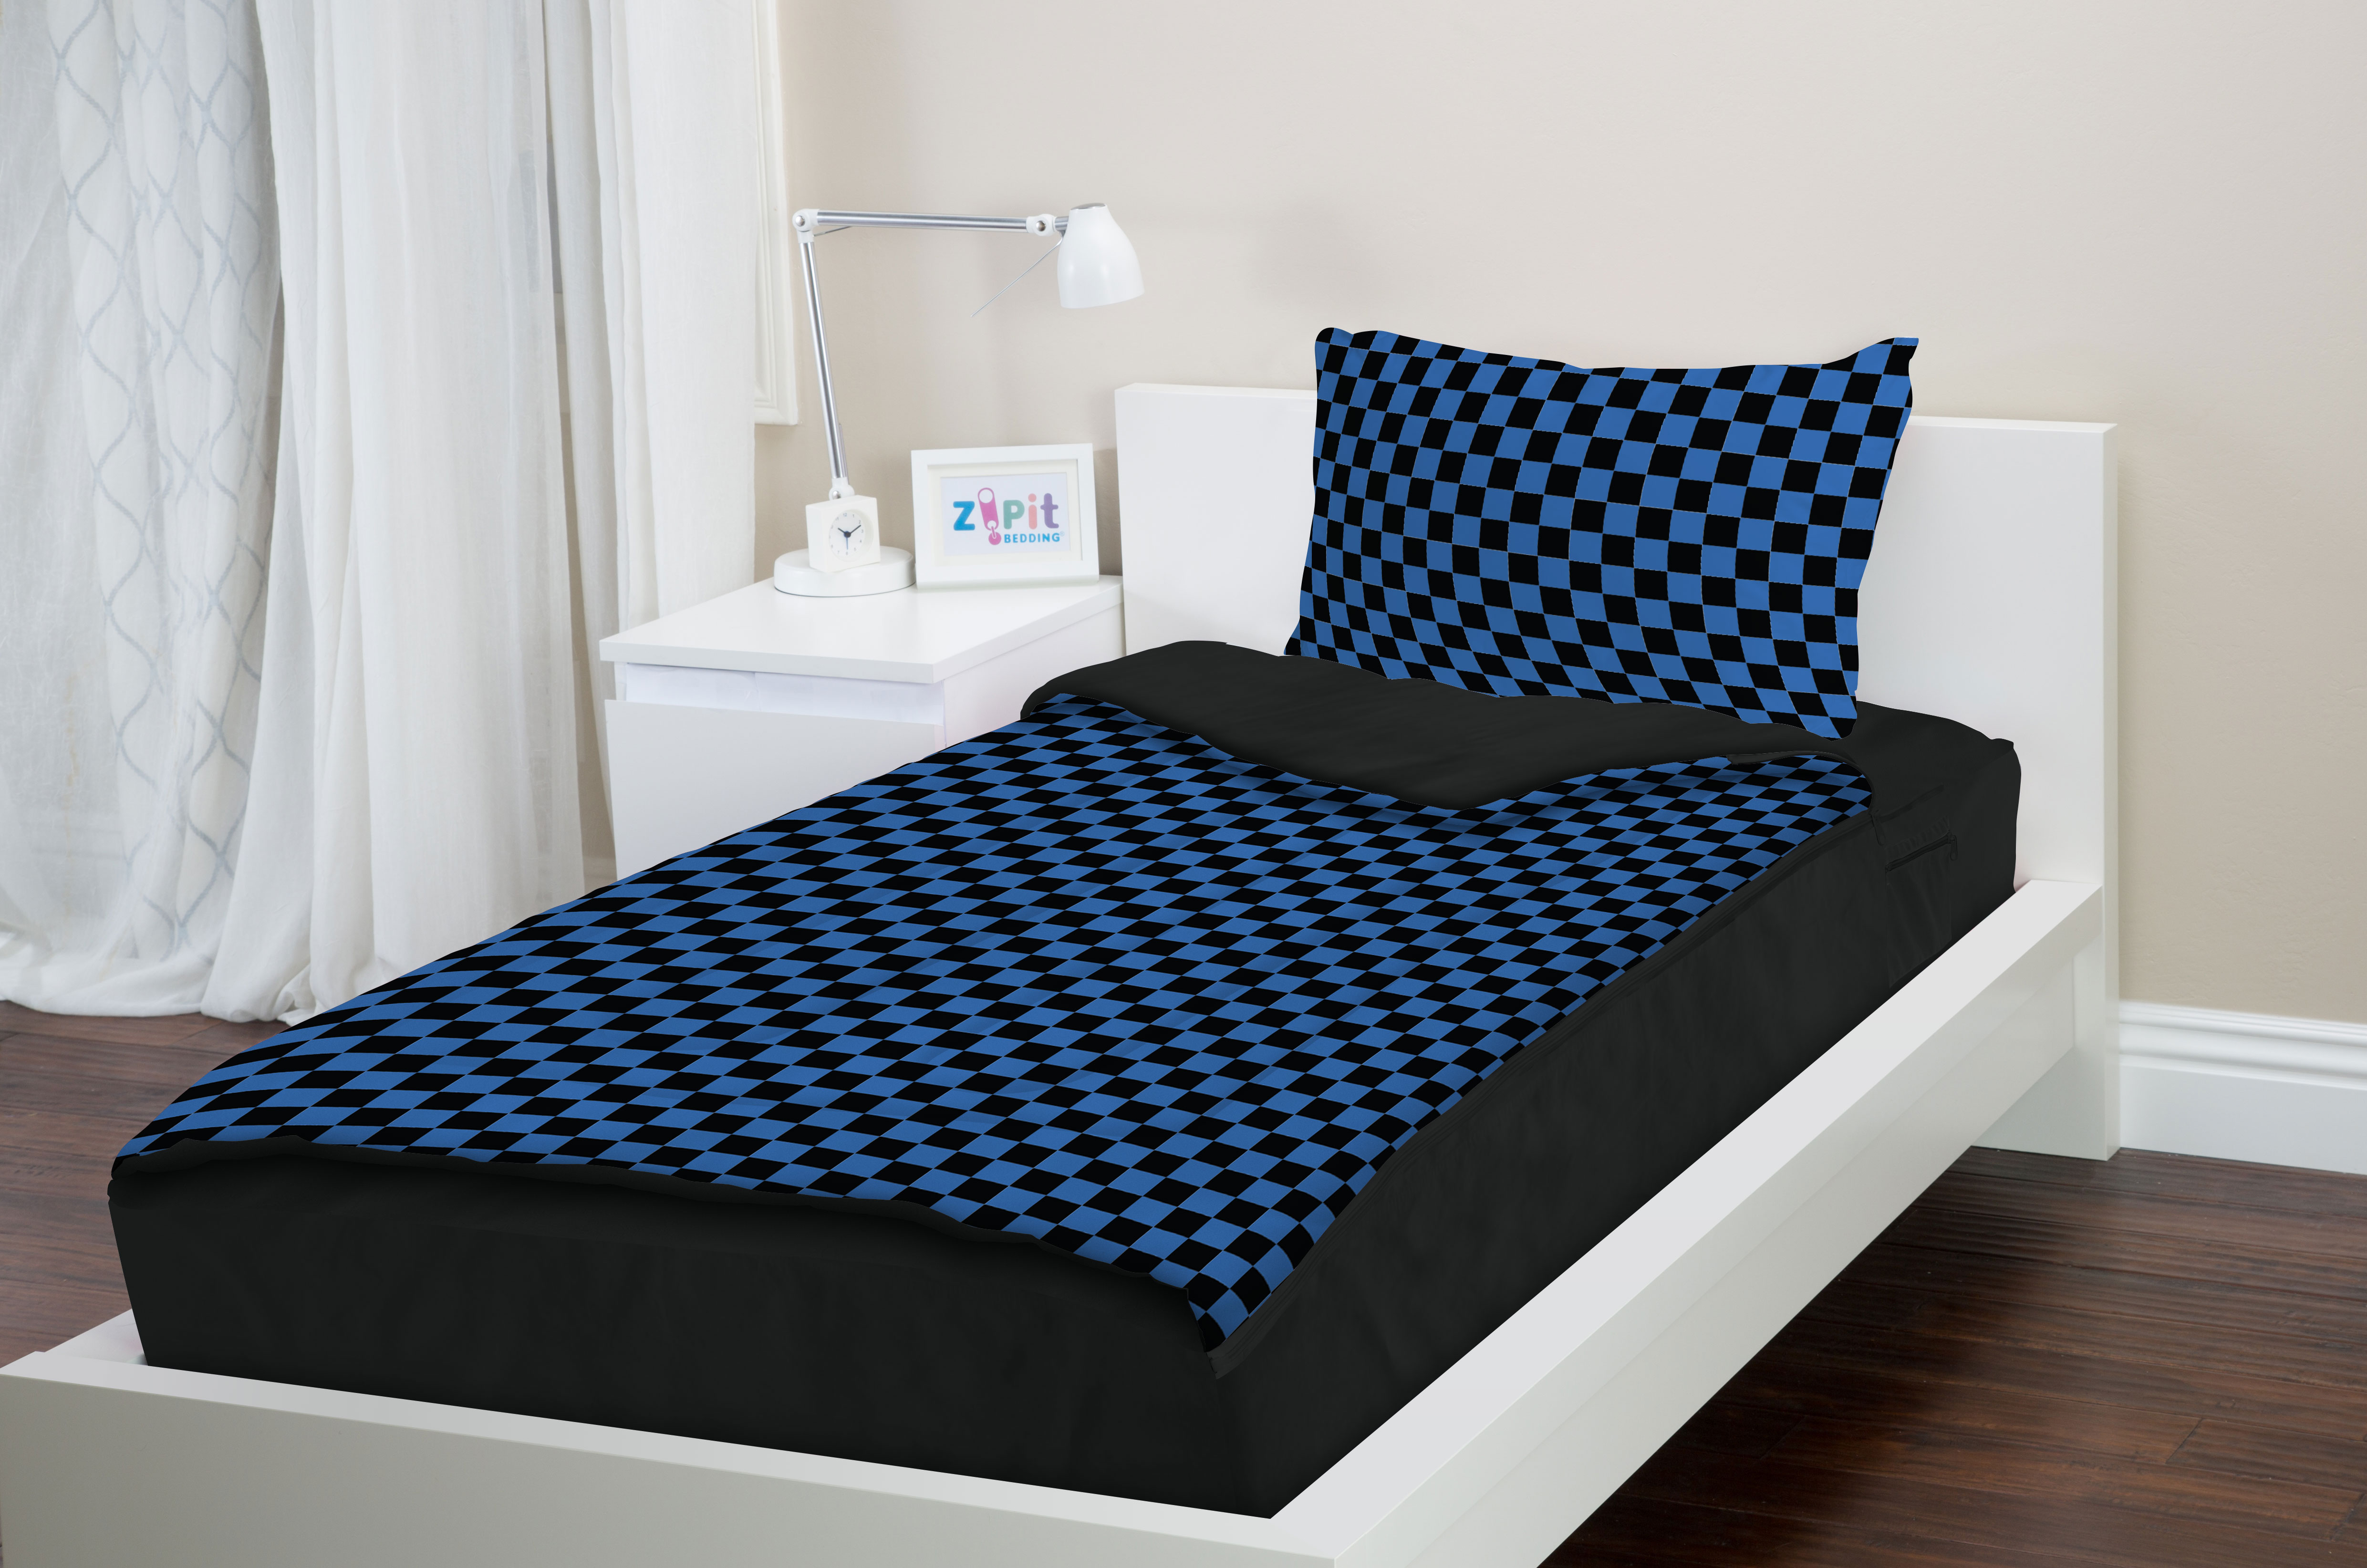 100 Twin Beds For Sale In South Africa